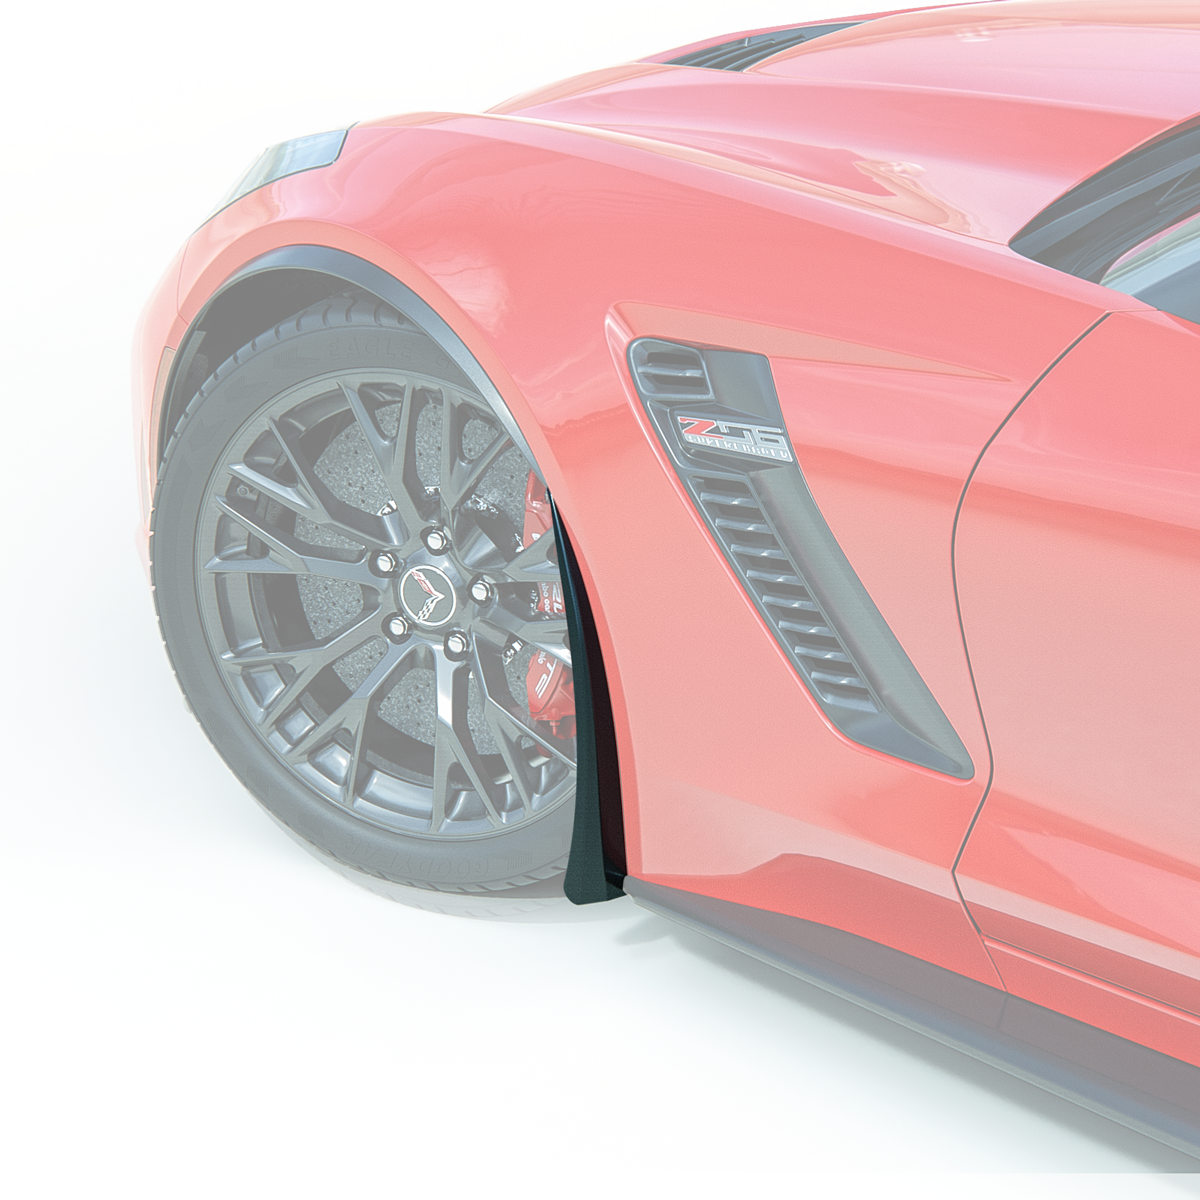 C7 Corvette ACS XL Front & Rear Wheel Rock / Splash Guards Set, Painted in Carbon Flash Metallatic